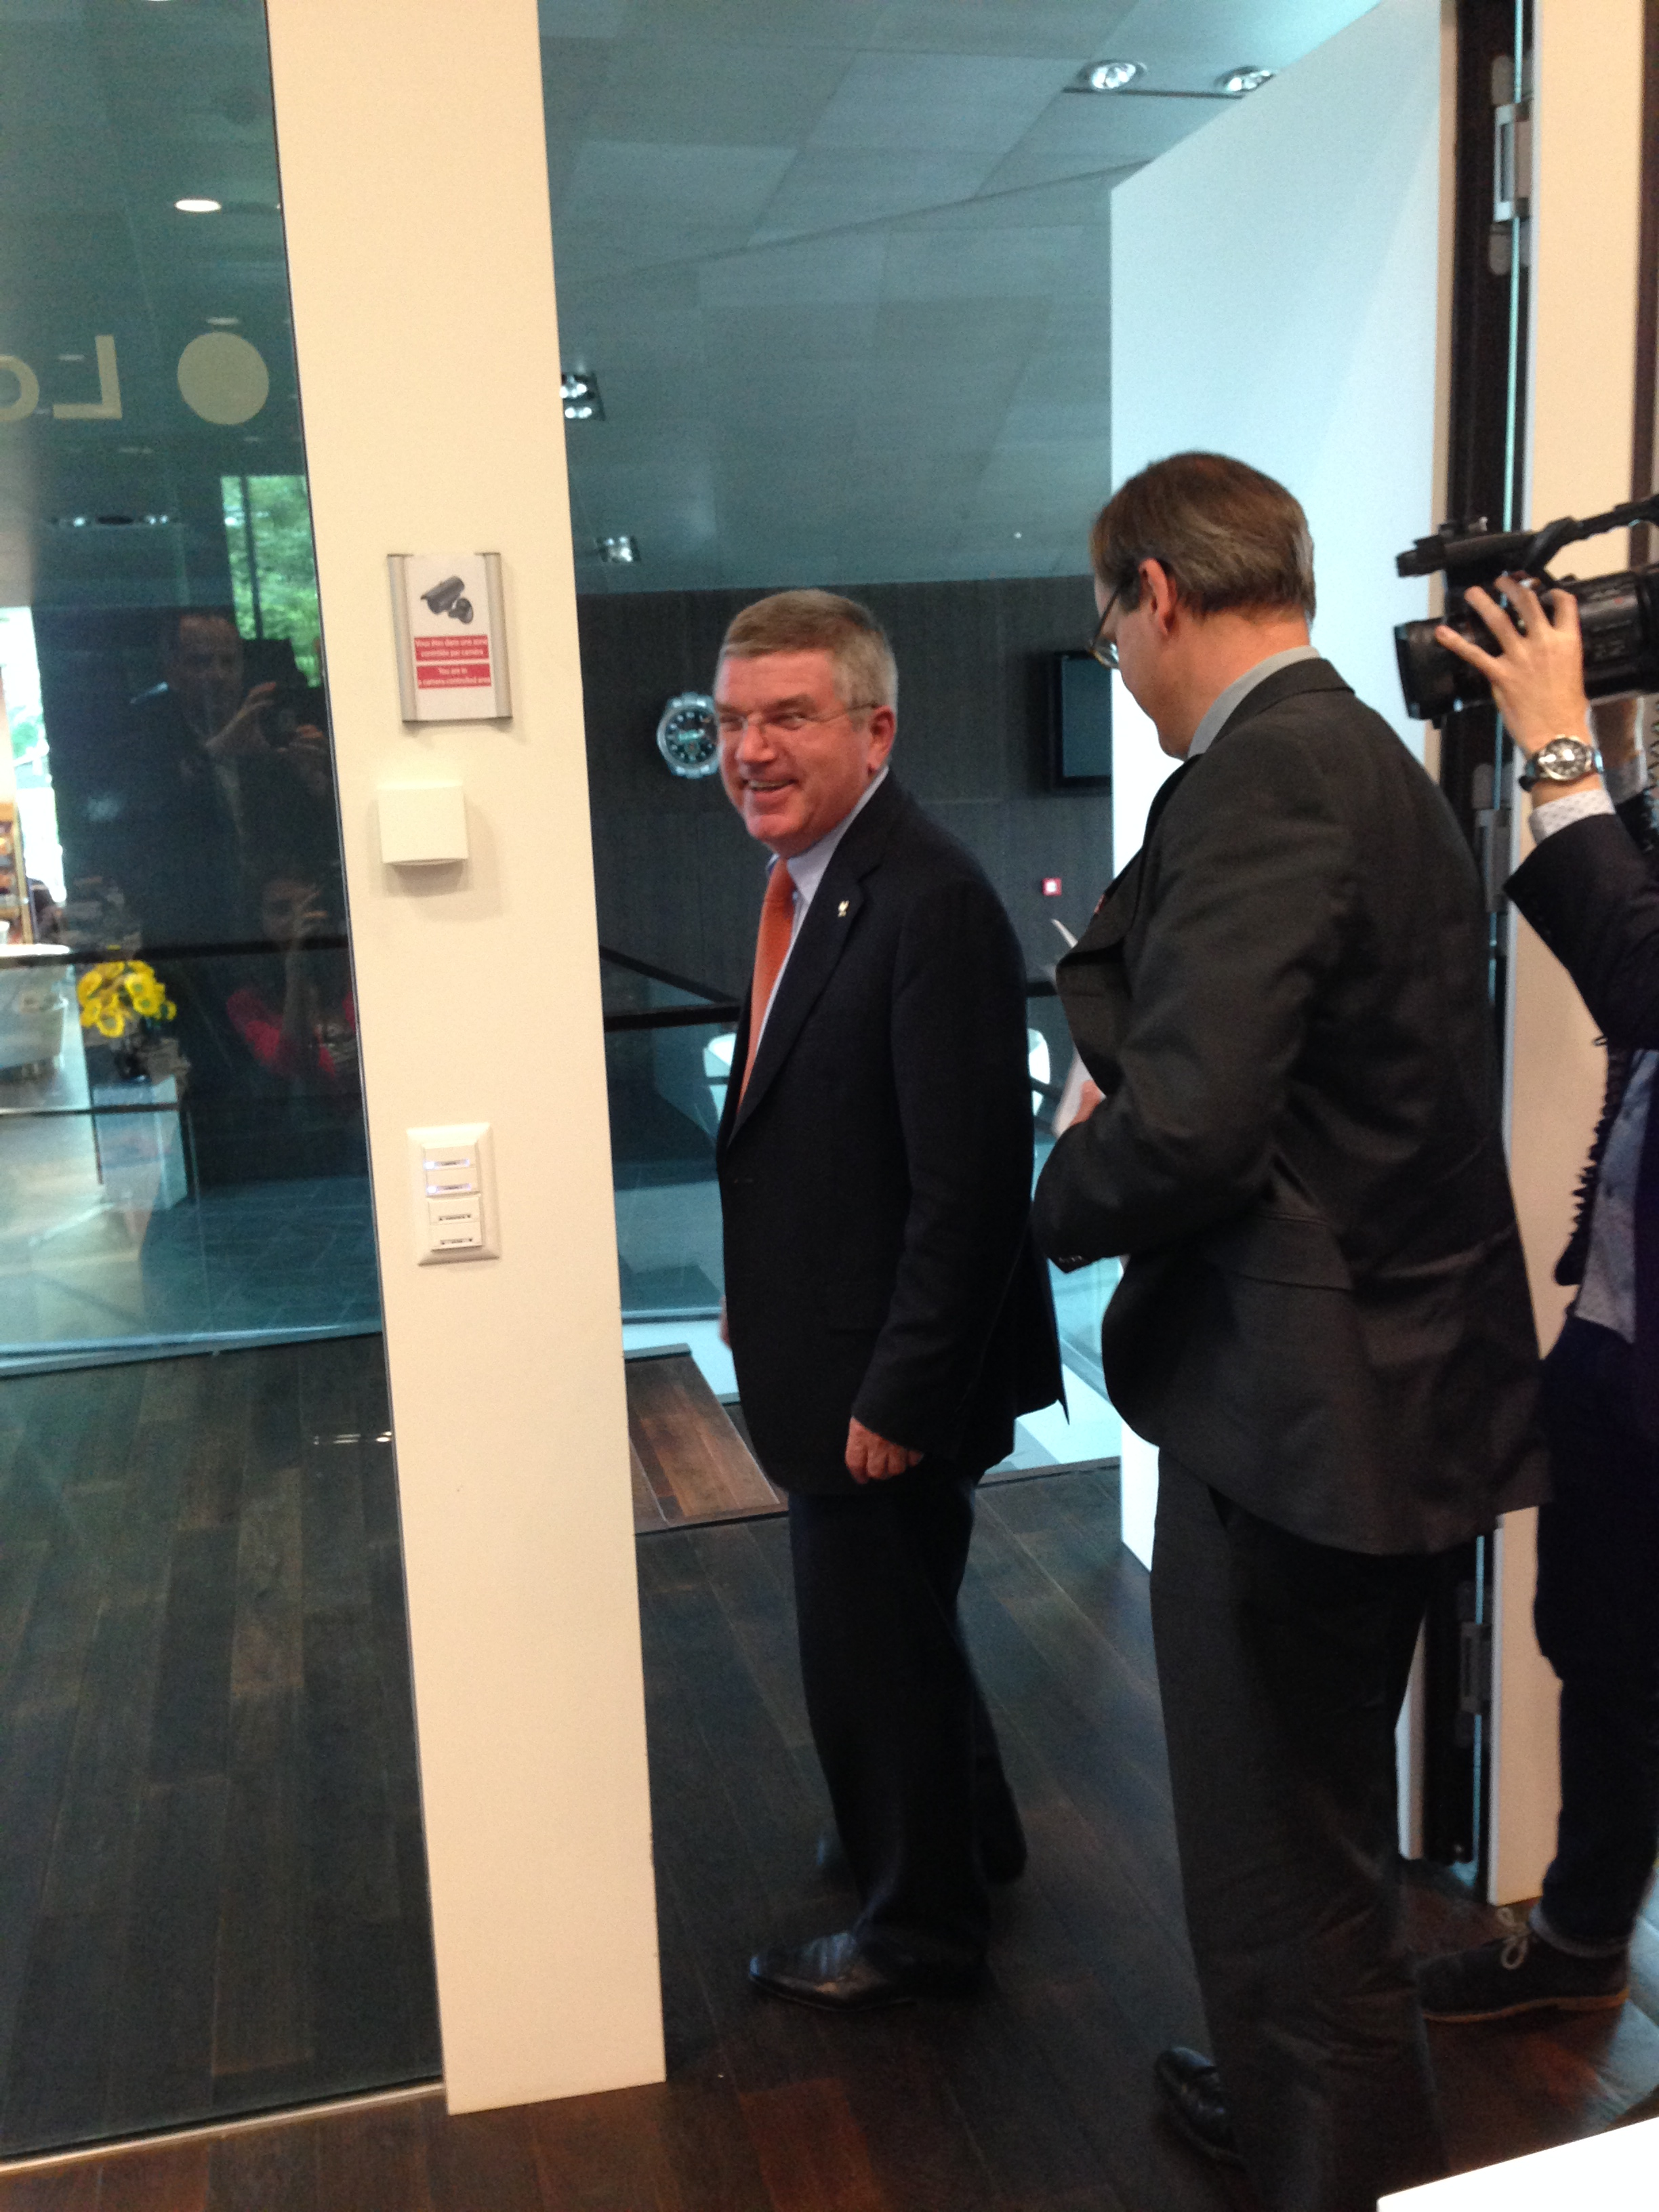 IOC president Thomas Bach, flanked by communications director Mark Adams, leaving Wednesday's news conference